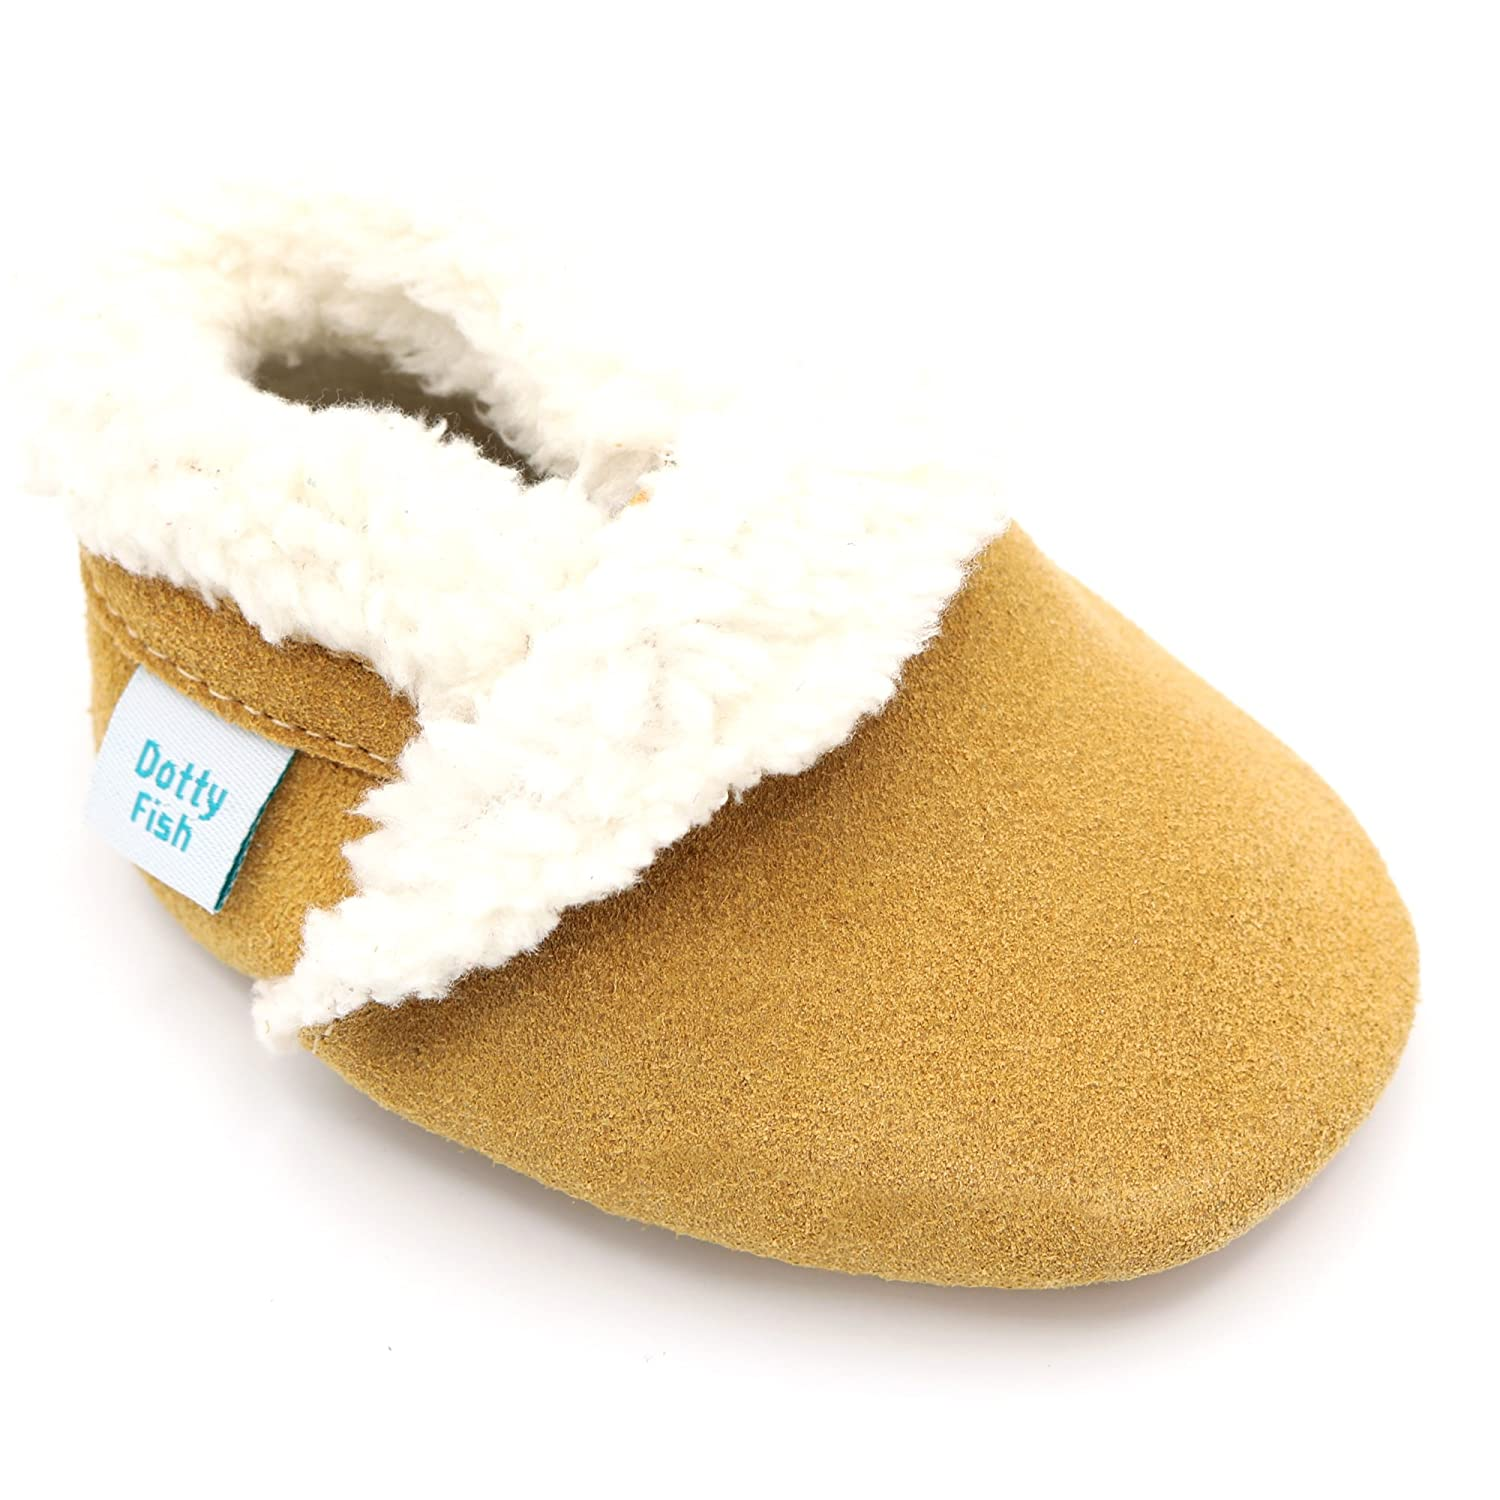 Dotty Fish Suede Baby Slippers. Toddler. Young Kids. Fleece Lined. Navy, Soft Grey, Pink and Tan. Non-Slip Soft Sole. 0-6 Months to 4-5 Years